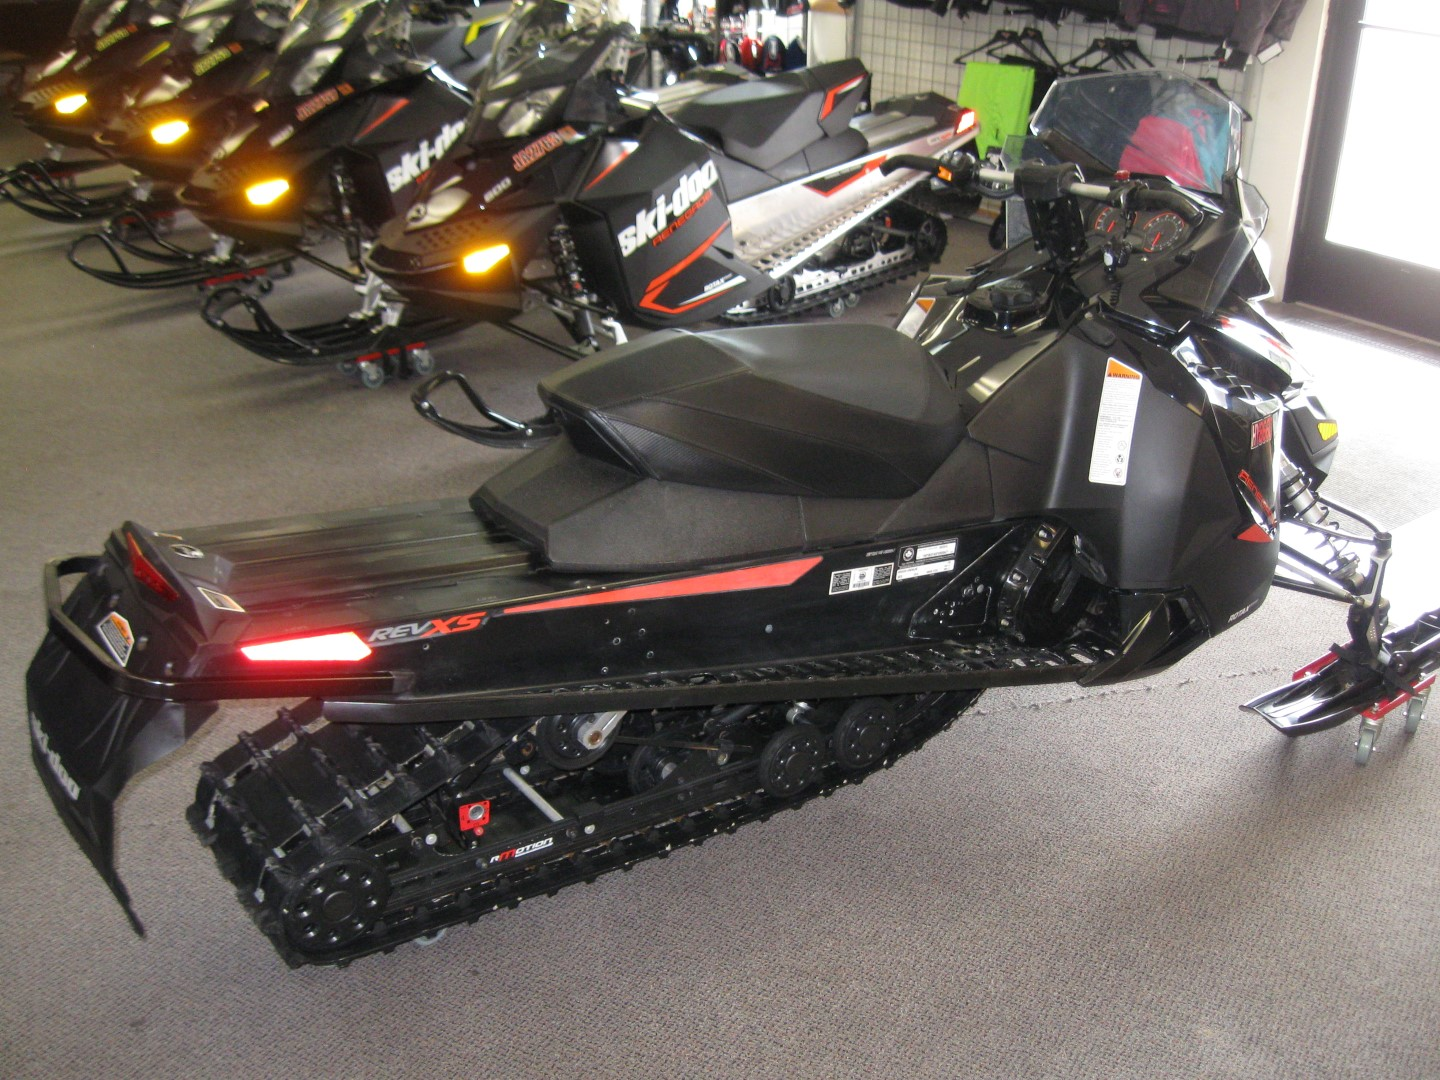 2015 Ski-Doo MXZ Renegade 600 E-Tec Snowmobile for sale eagan mn Seaberg Motorsports Crosslake MN rear right quarter